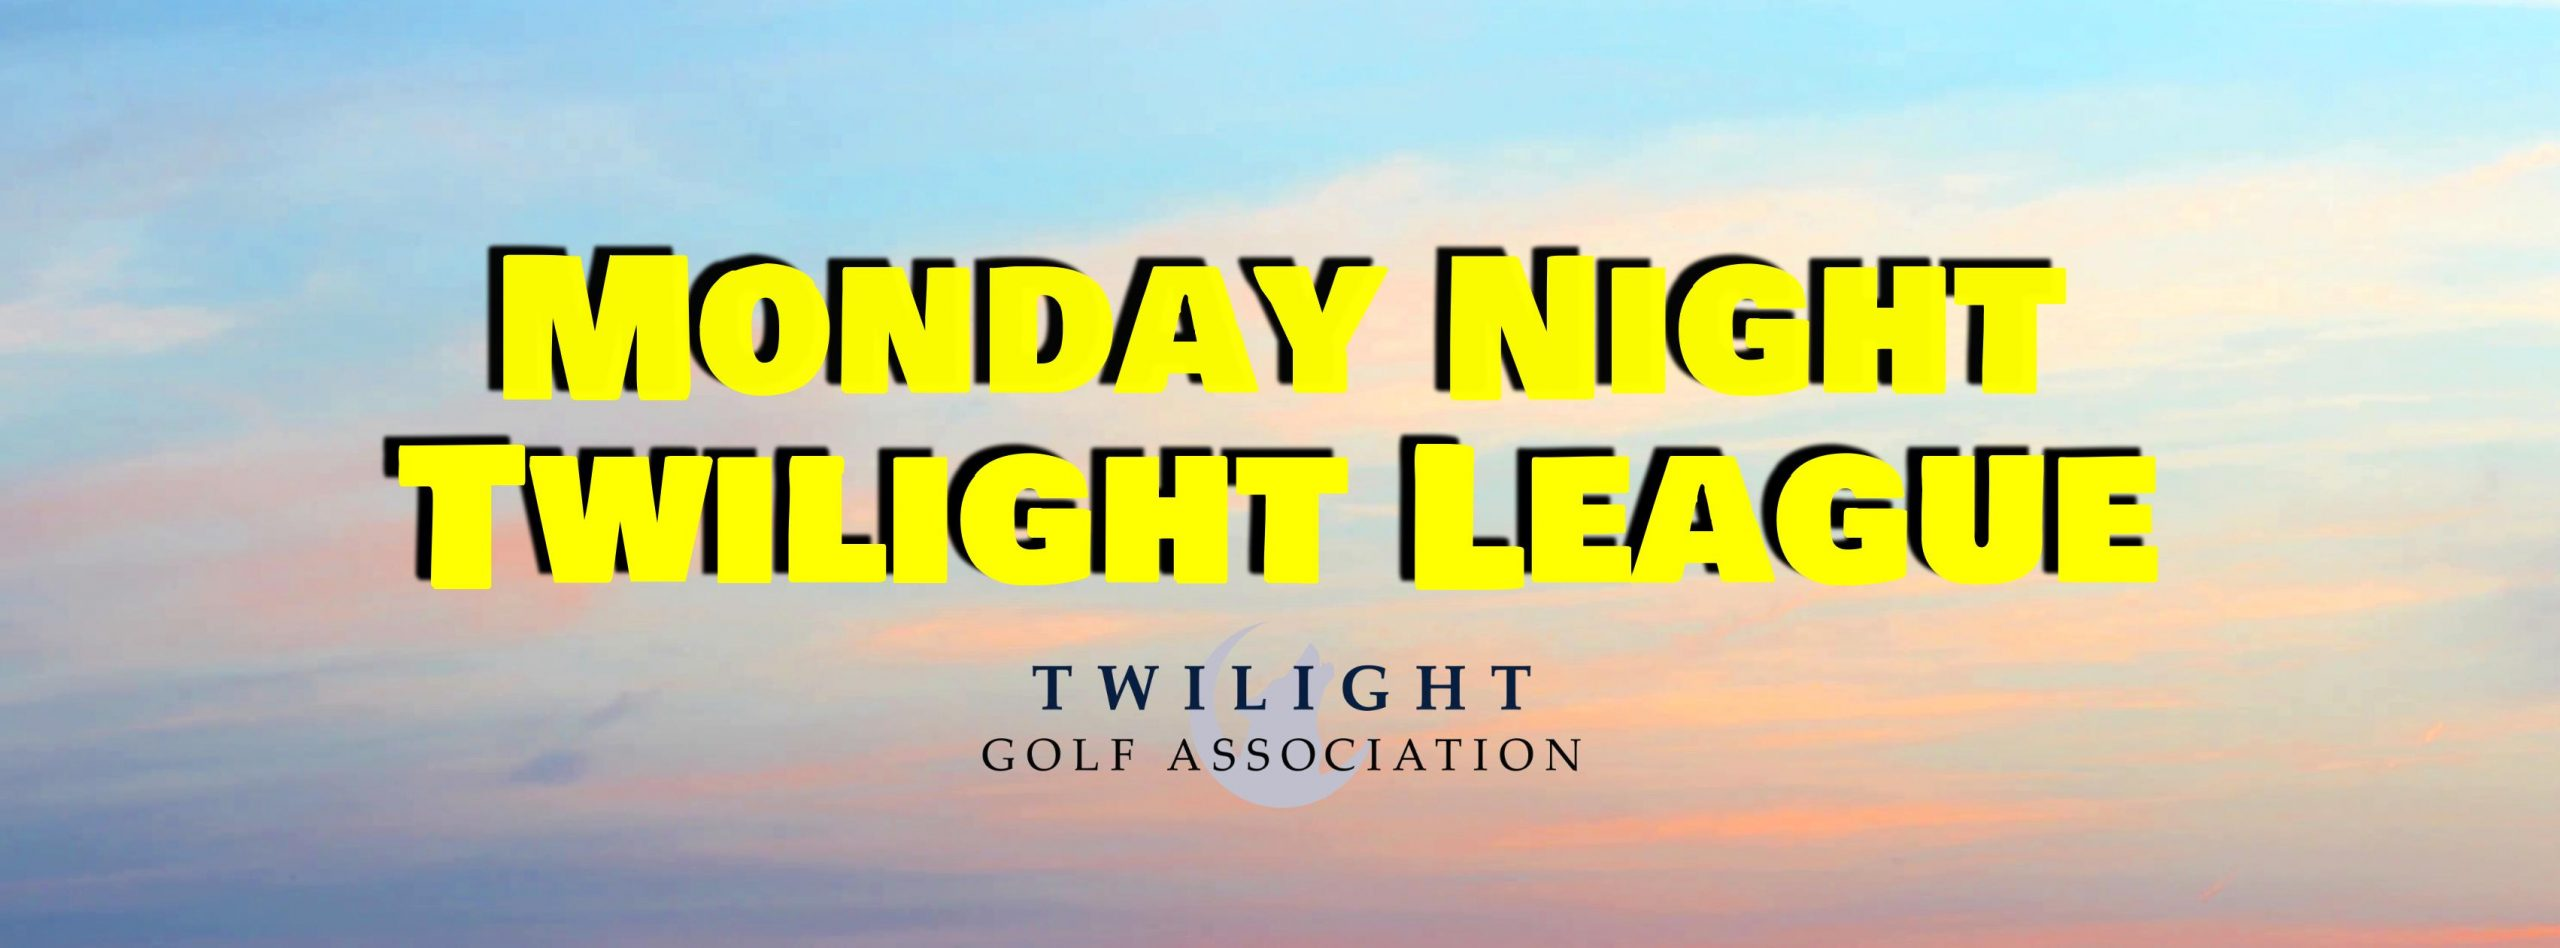 Monday Twilight League at Bey Lea Golf Course